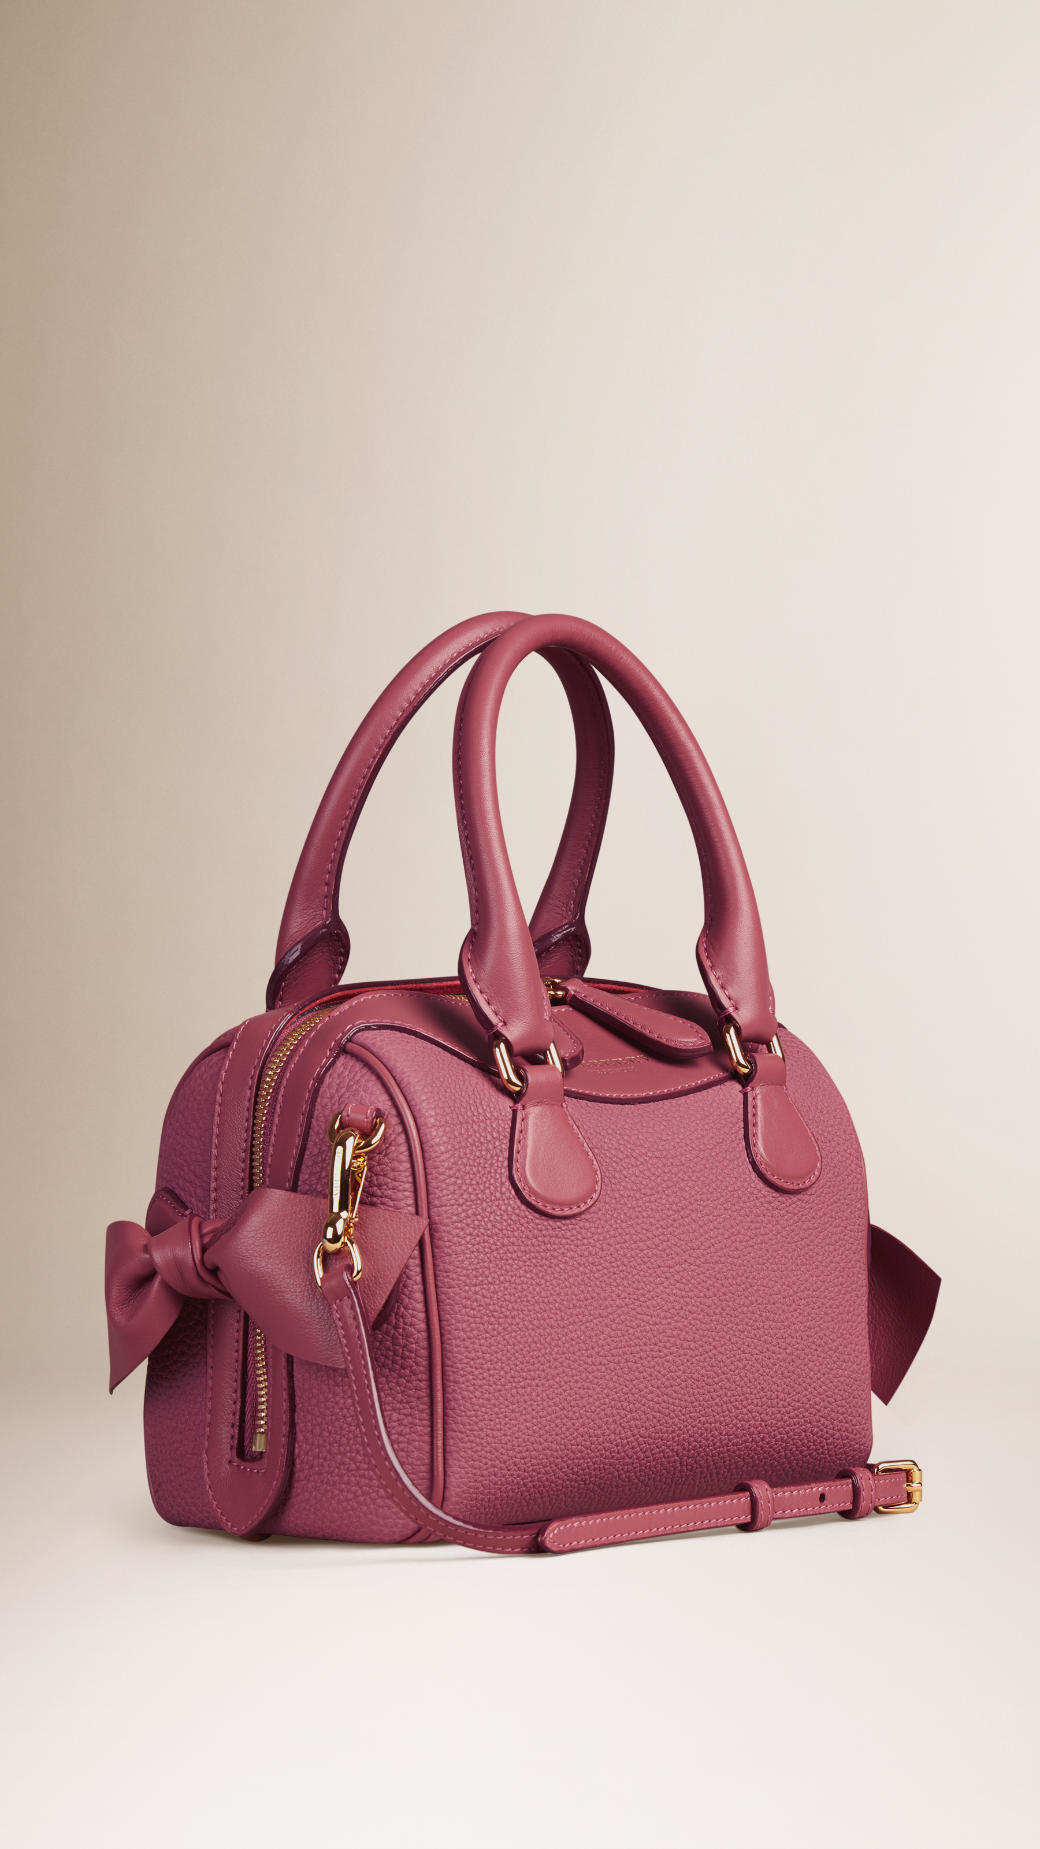 bd04b78575d Lyst - Burberry The Small Alchester Bow-Detailed Leather Bag in Pink